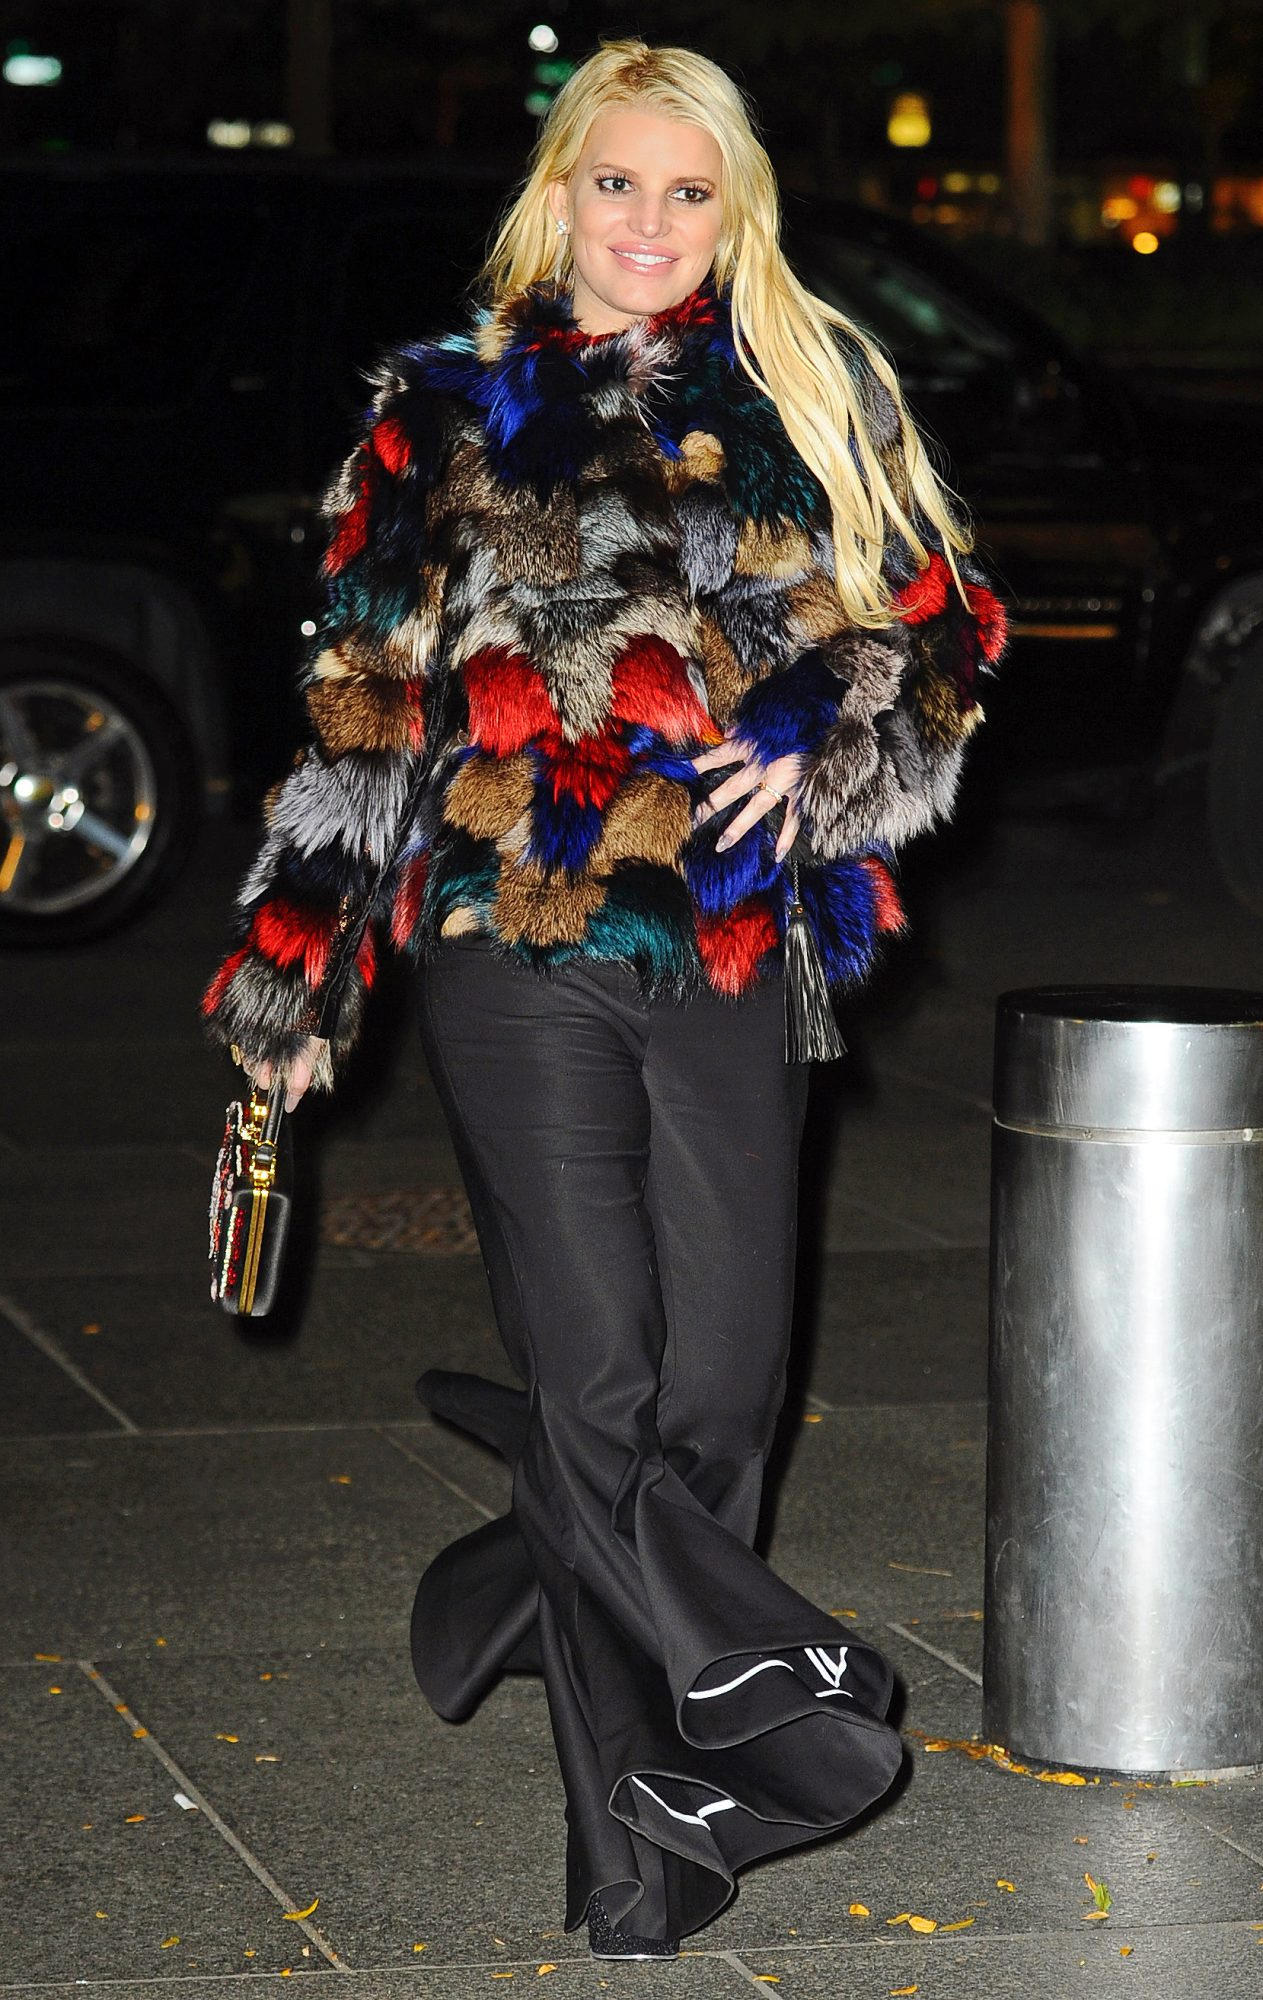 Jessica Simpson looks stunning in a colorful fur coat in New York City.